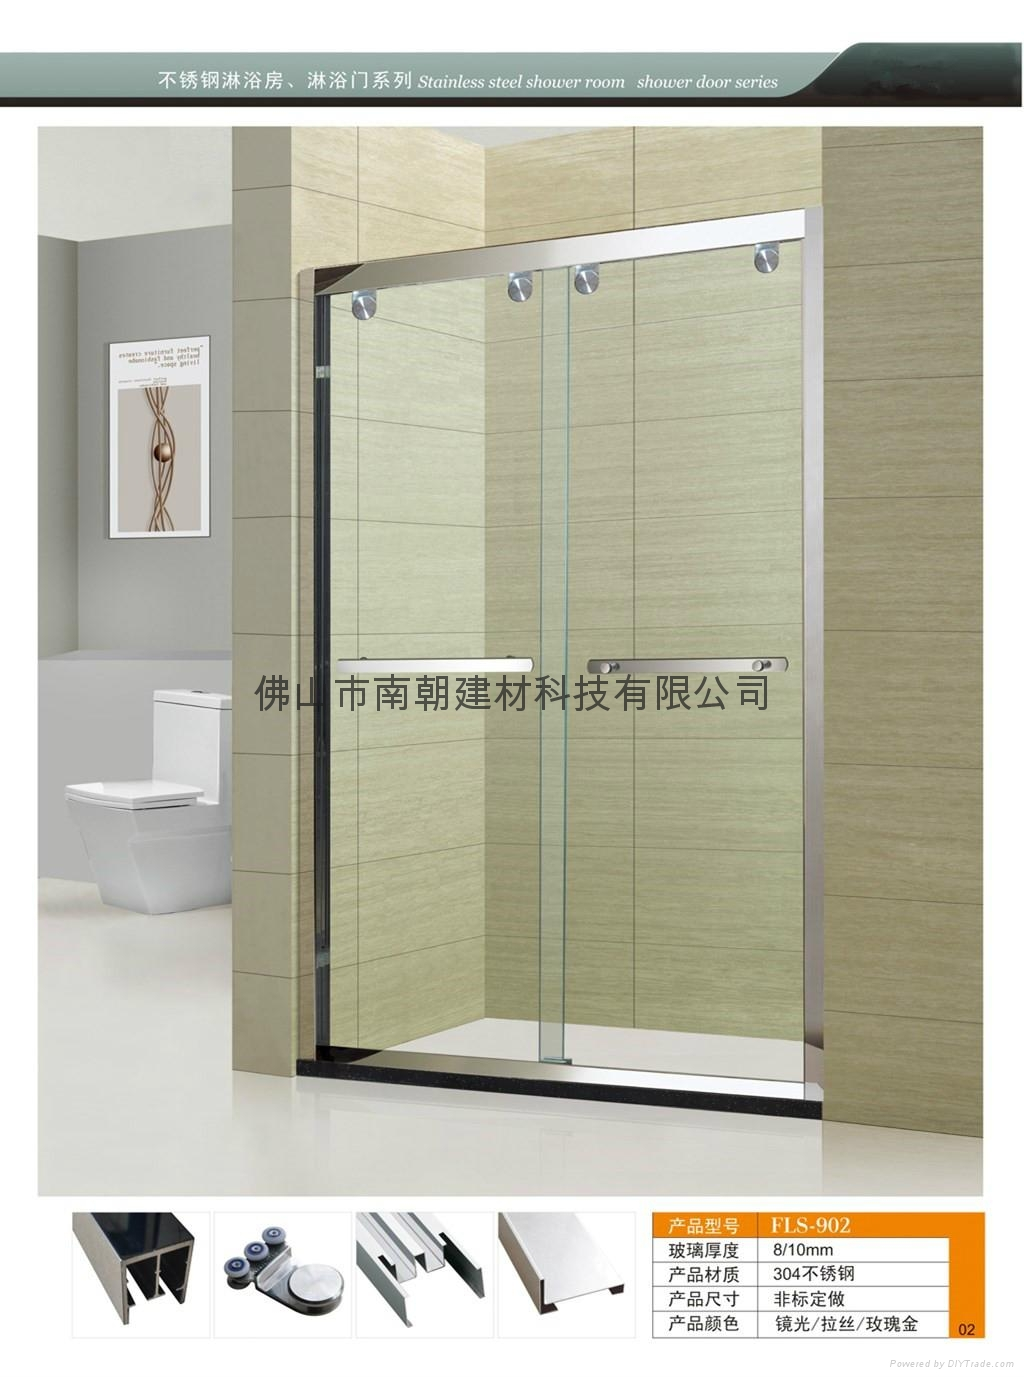 FS - 902 brand hotel one-piece glass shower room 3